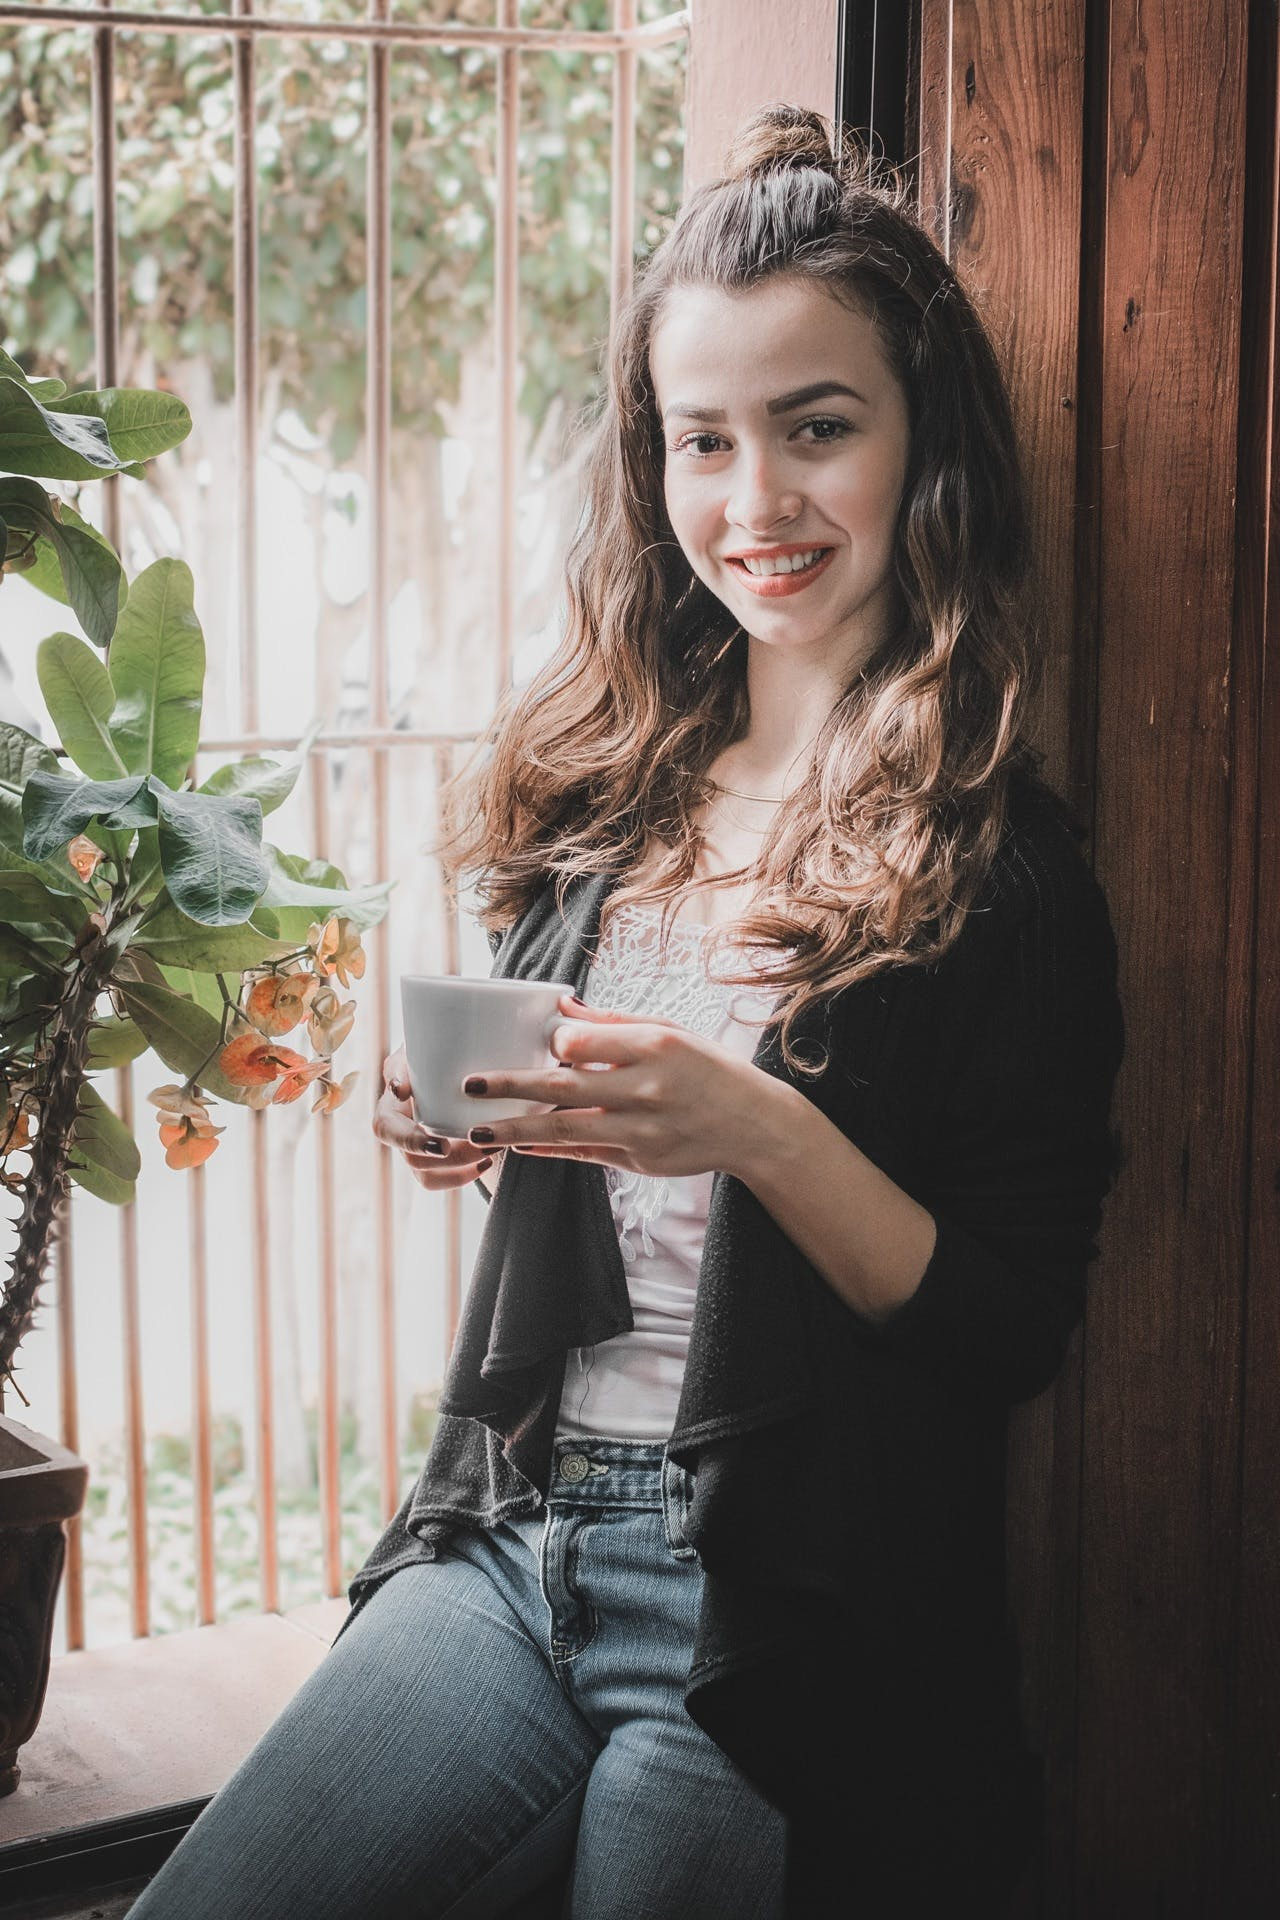 Woman Near Window Holding Cup of Coffee